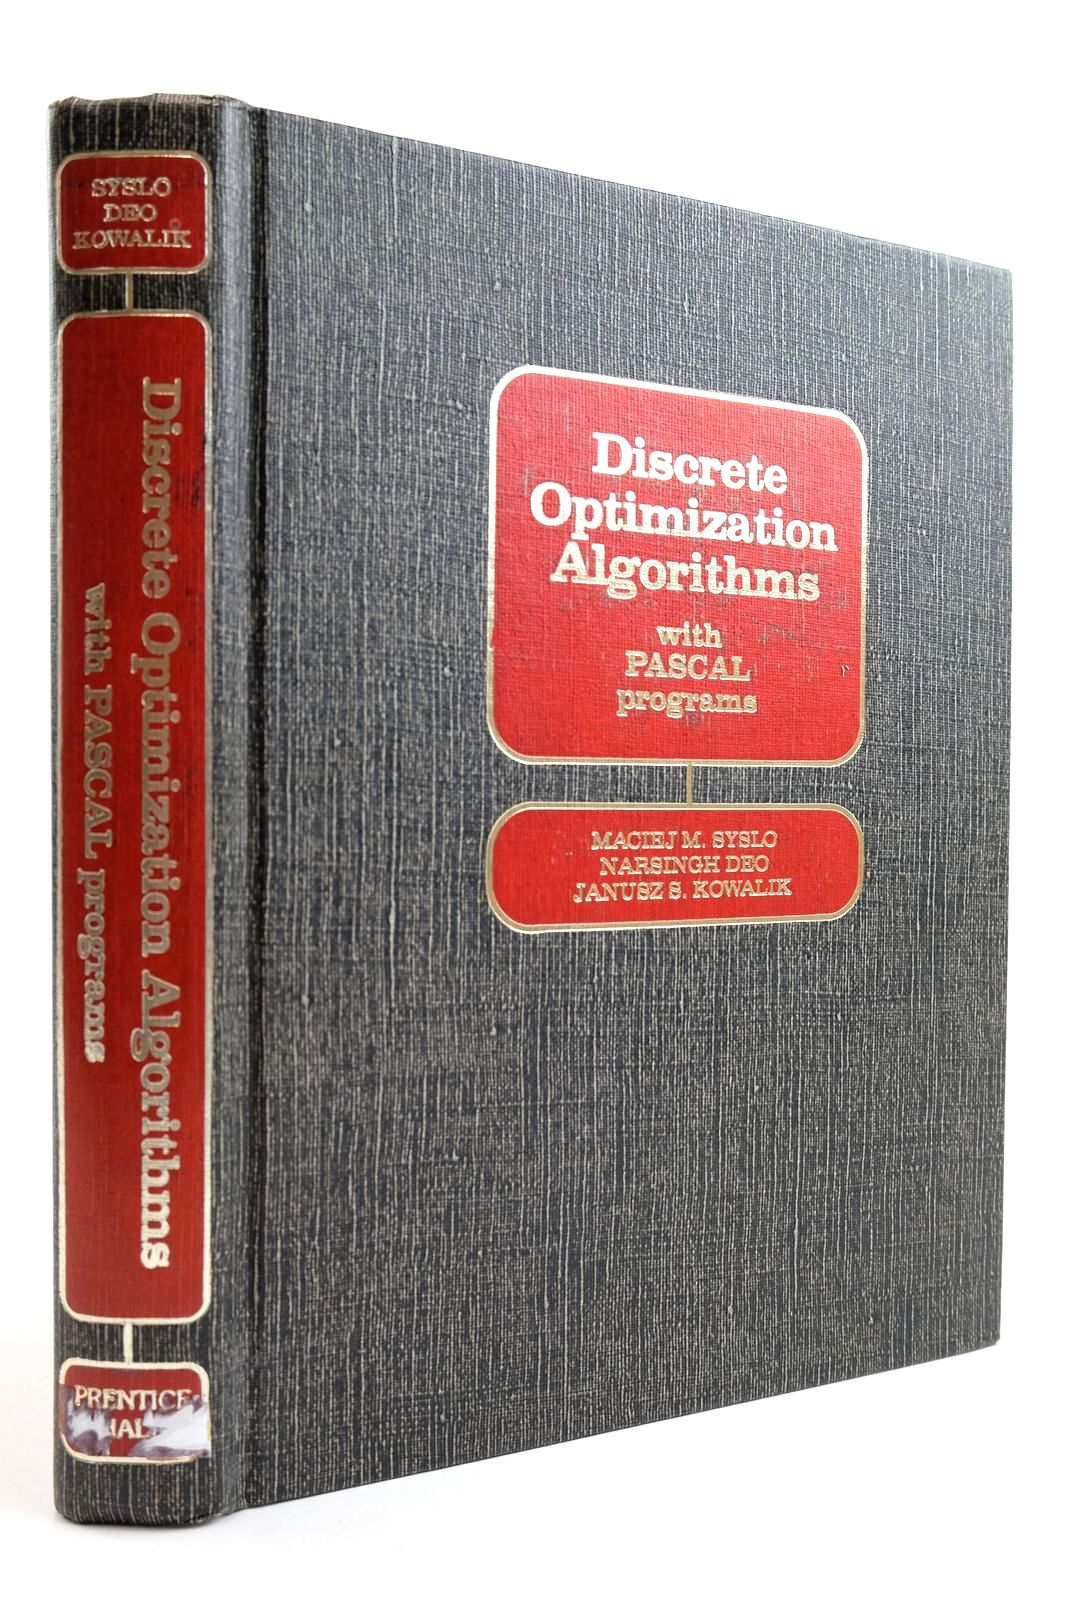 Photo of DISCRETE OPTIMIZATION ALGORITHMS WITH PASCAL PROGRAMS- Stock Number: 2134108